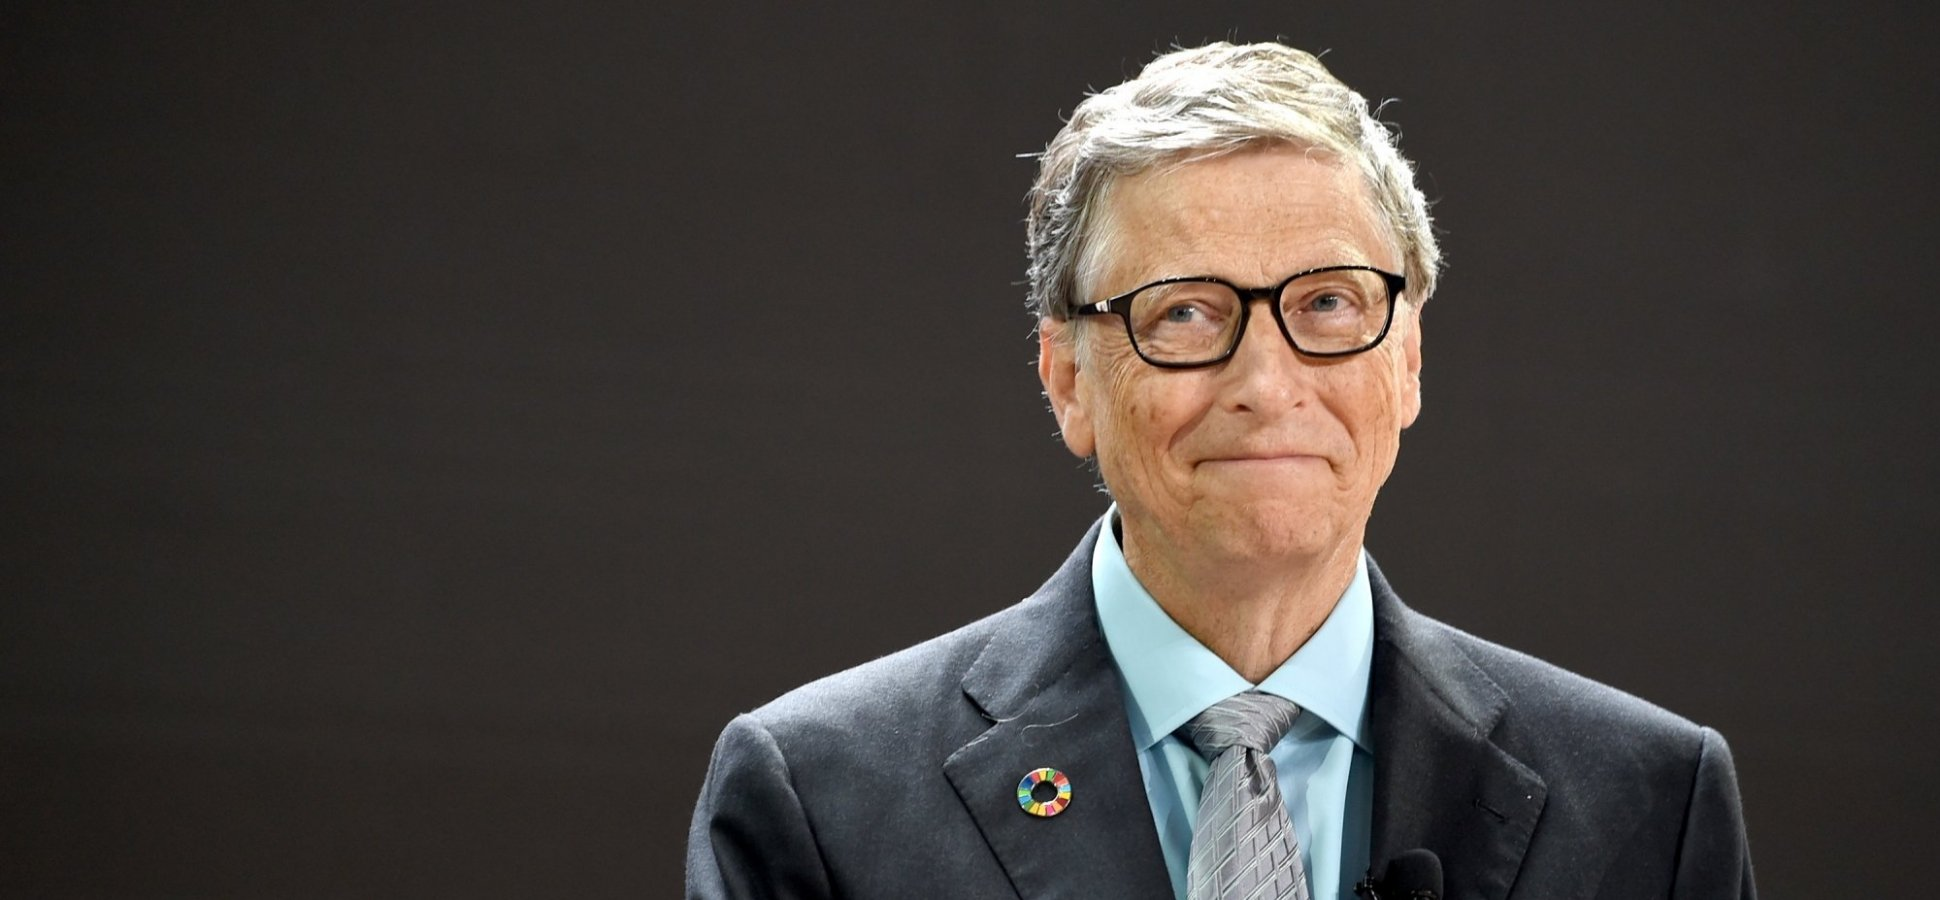 I Watched the Netflix Bill Gates Documentary. Here Are 5 Things You Had No Idea Were True About the Microsoft Co-Founder